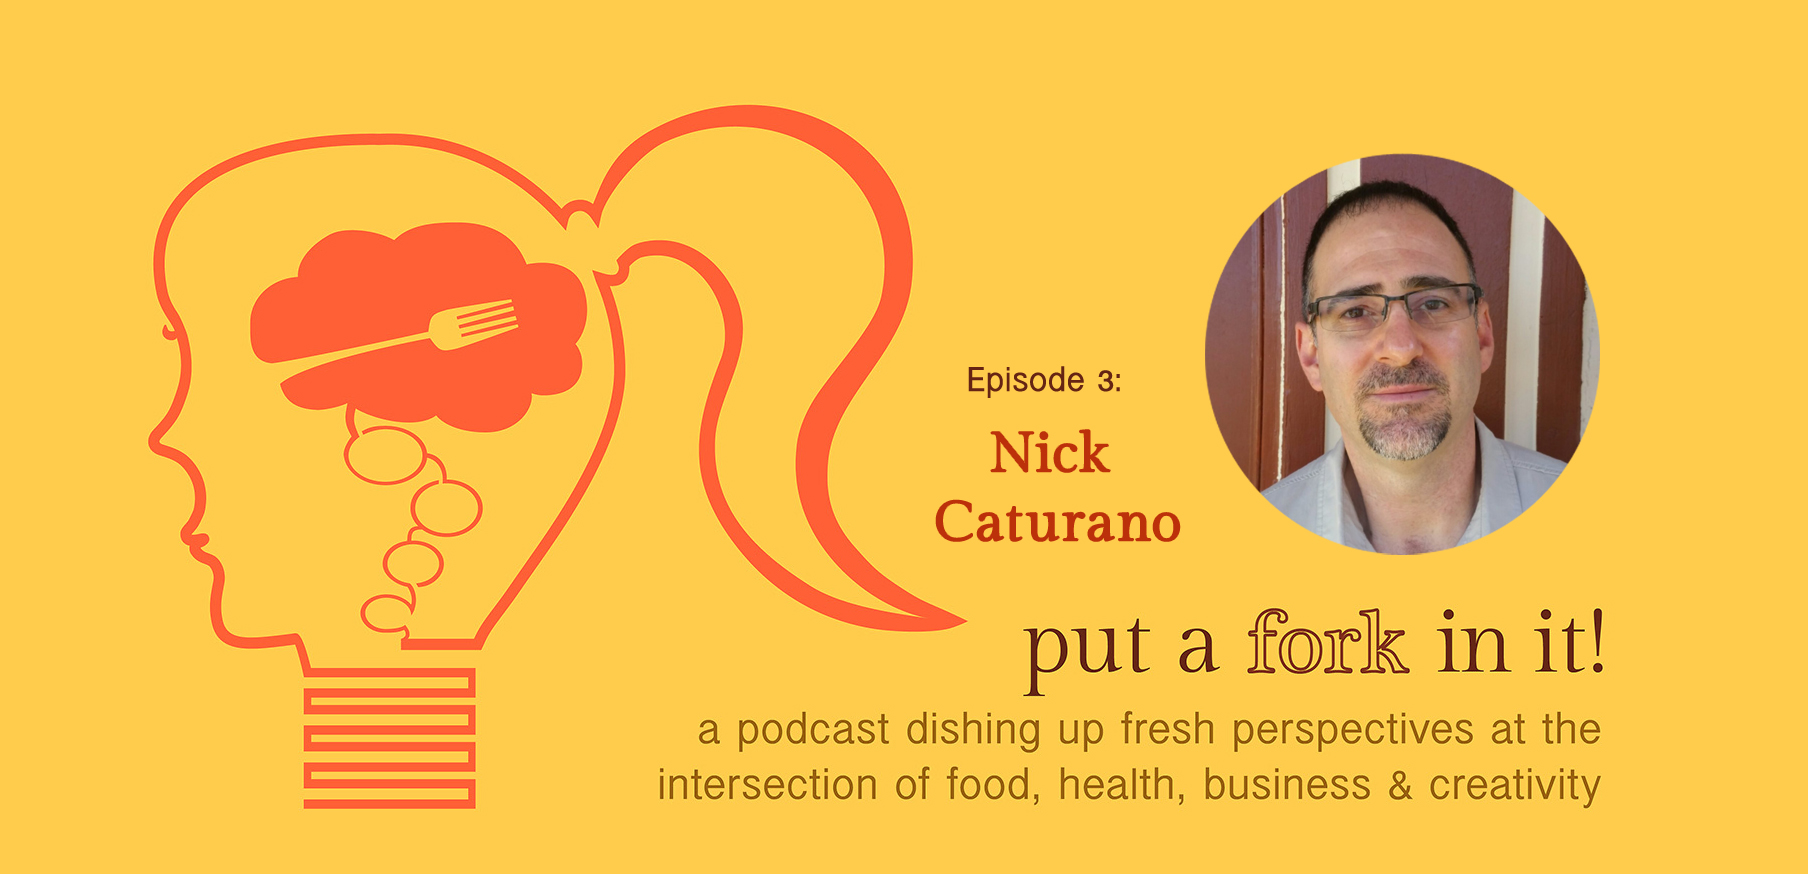 PAFII Episode 3: Nick Caturano, Co-Founder, Dinesafe App